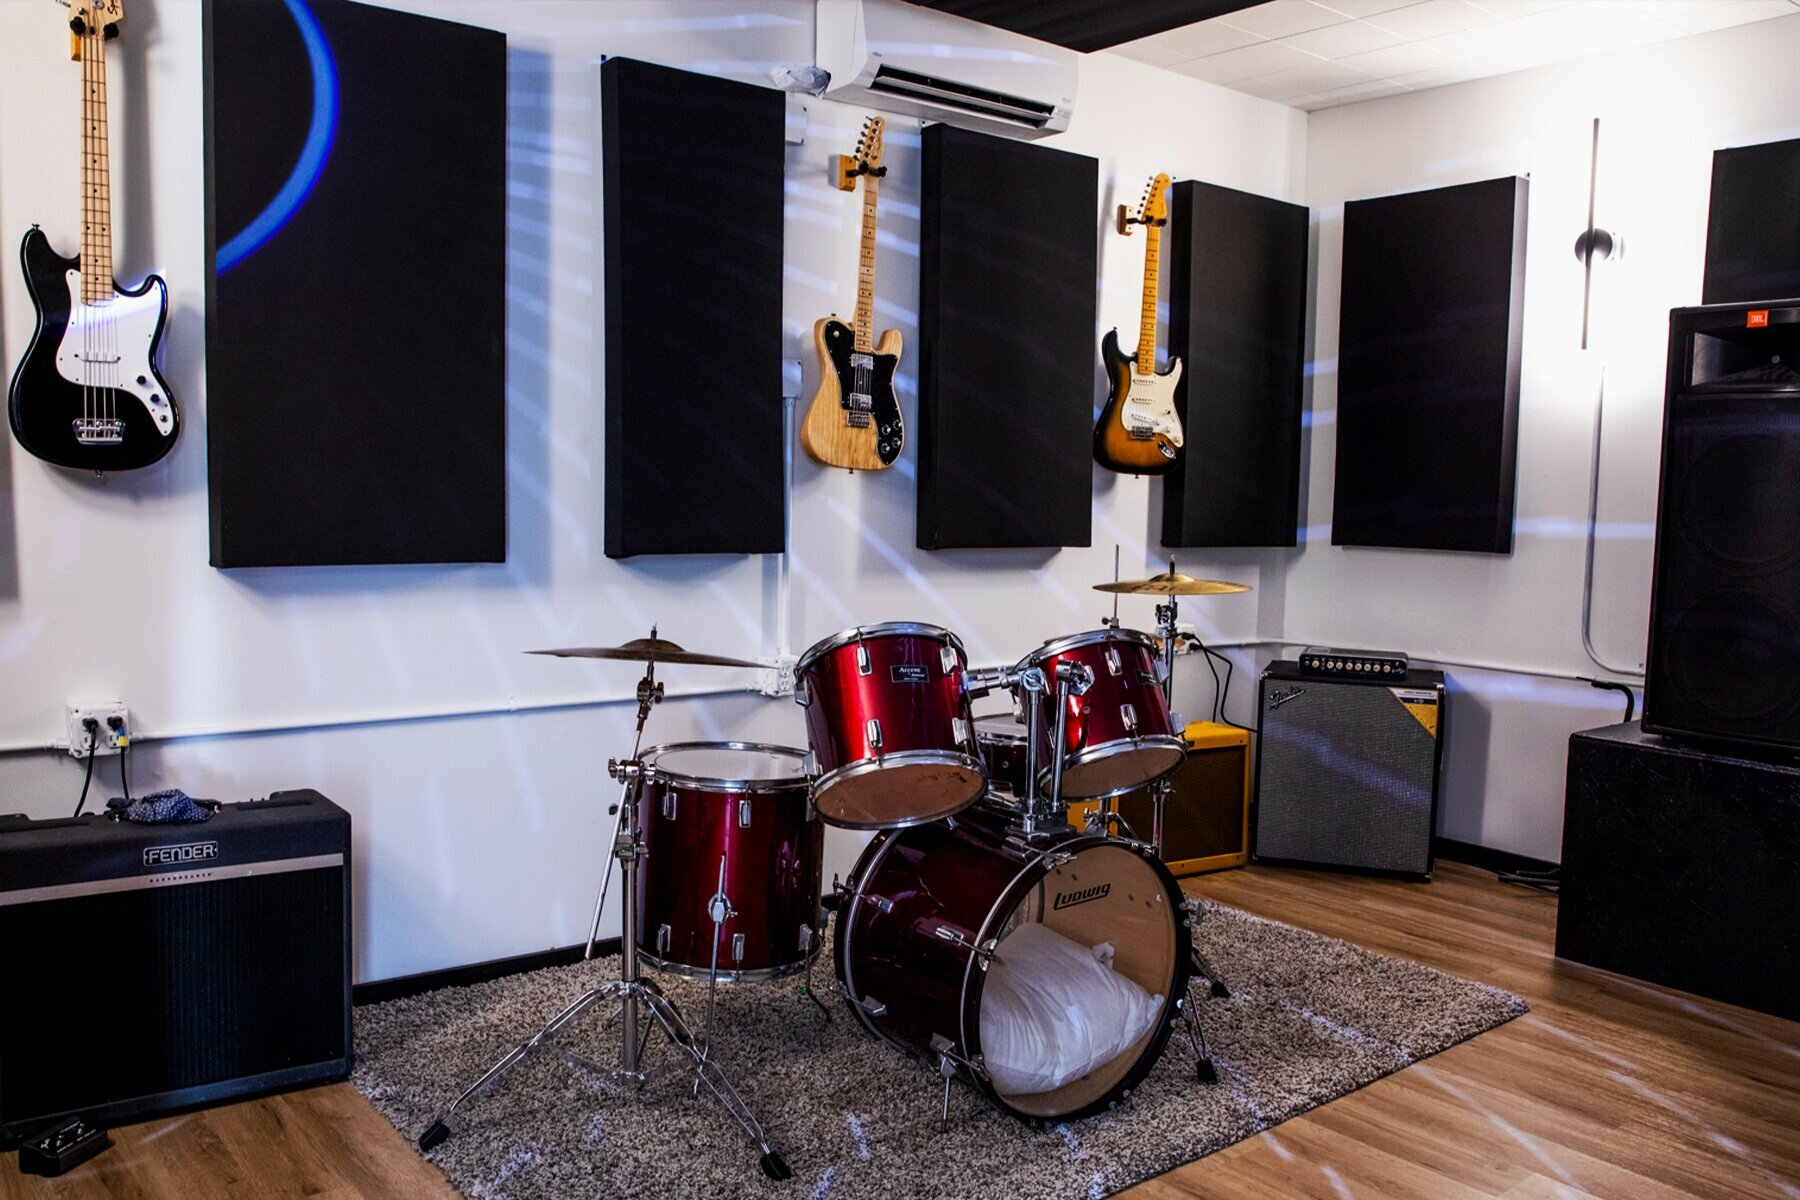 Studio 3 - 17 x 12.5 $22 An HourFender Blues DeluxeFender Hot Rod X 2Fender RUMBLE 410 Cabinet & RUMBLE 800 HeadLudwig Drum Kit (22, 12, 13, 16; 14 x 6 1/2 snare)Behringer consoleJBL speakers and monitor